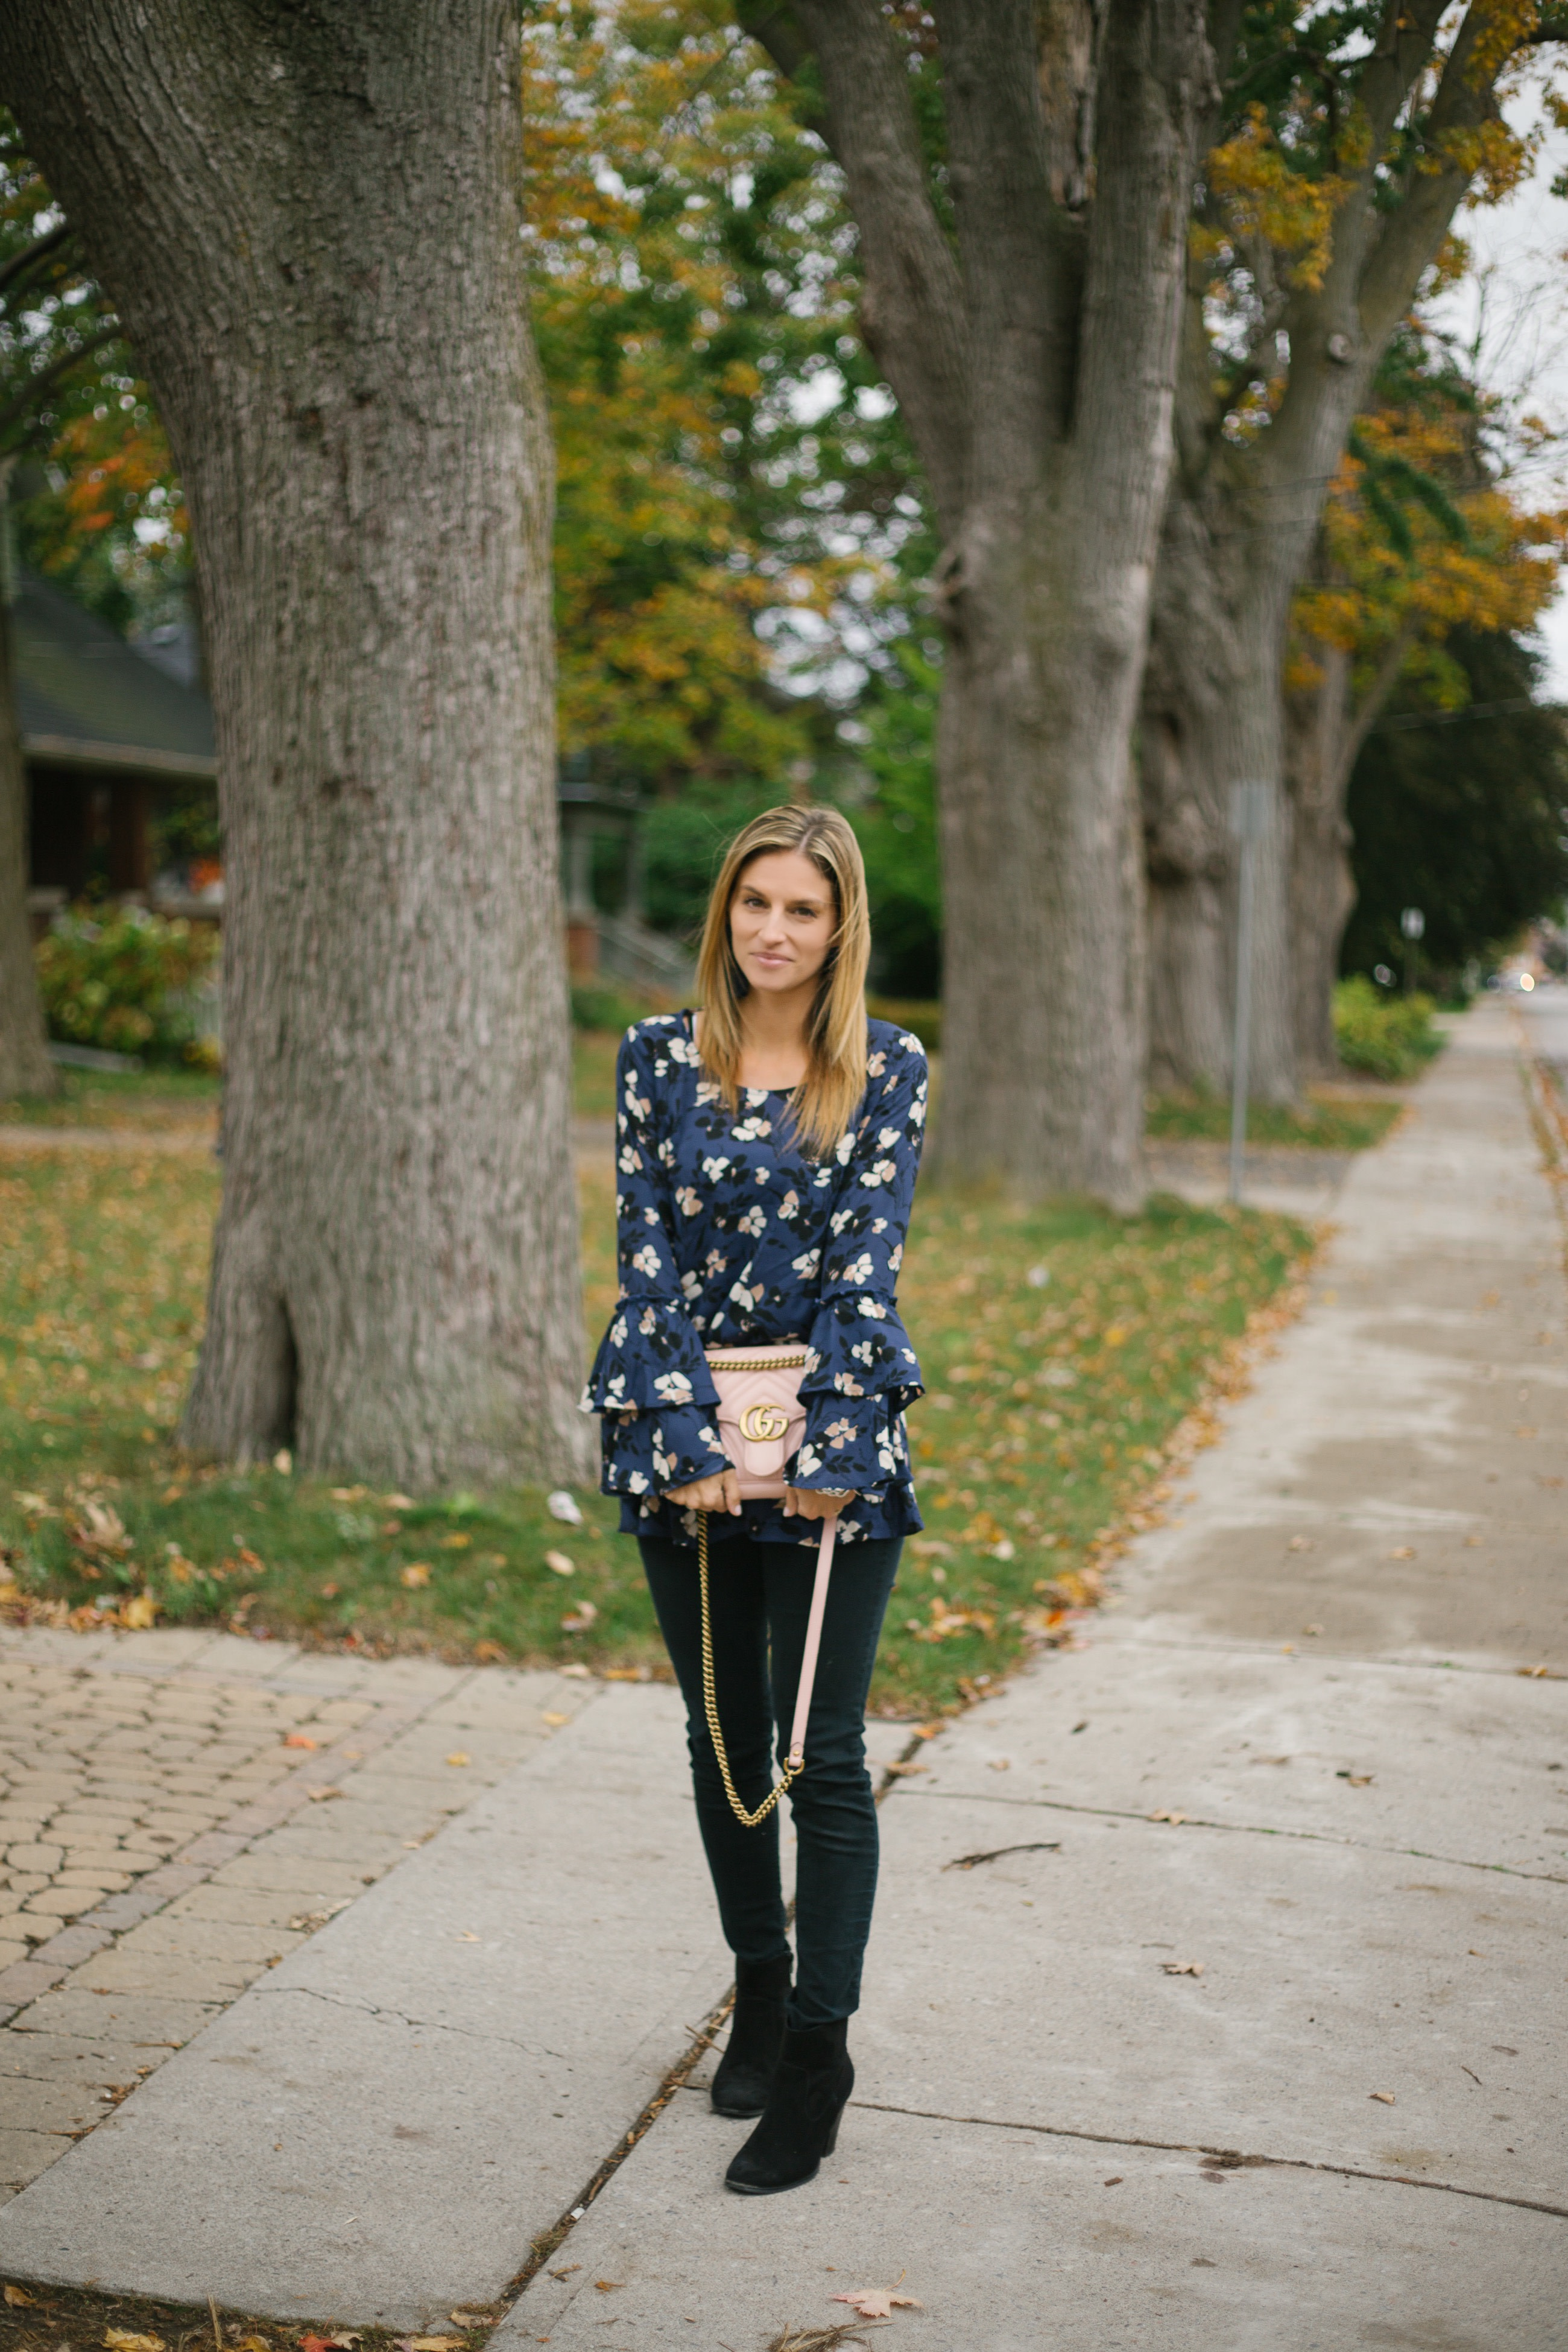 Perfect fall look with bell sleeve top, jeans and ankle boots